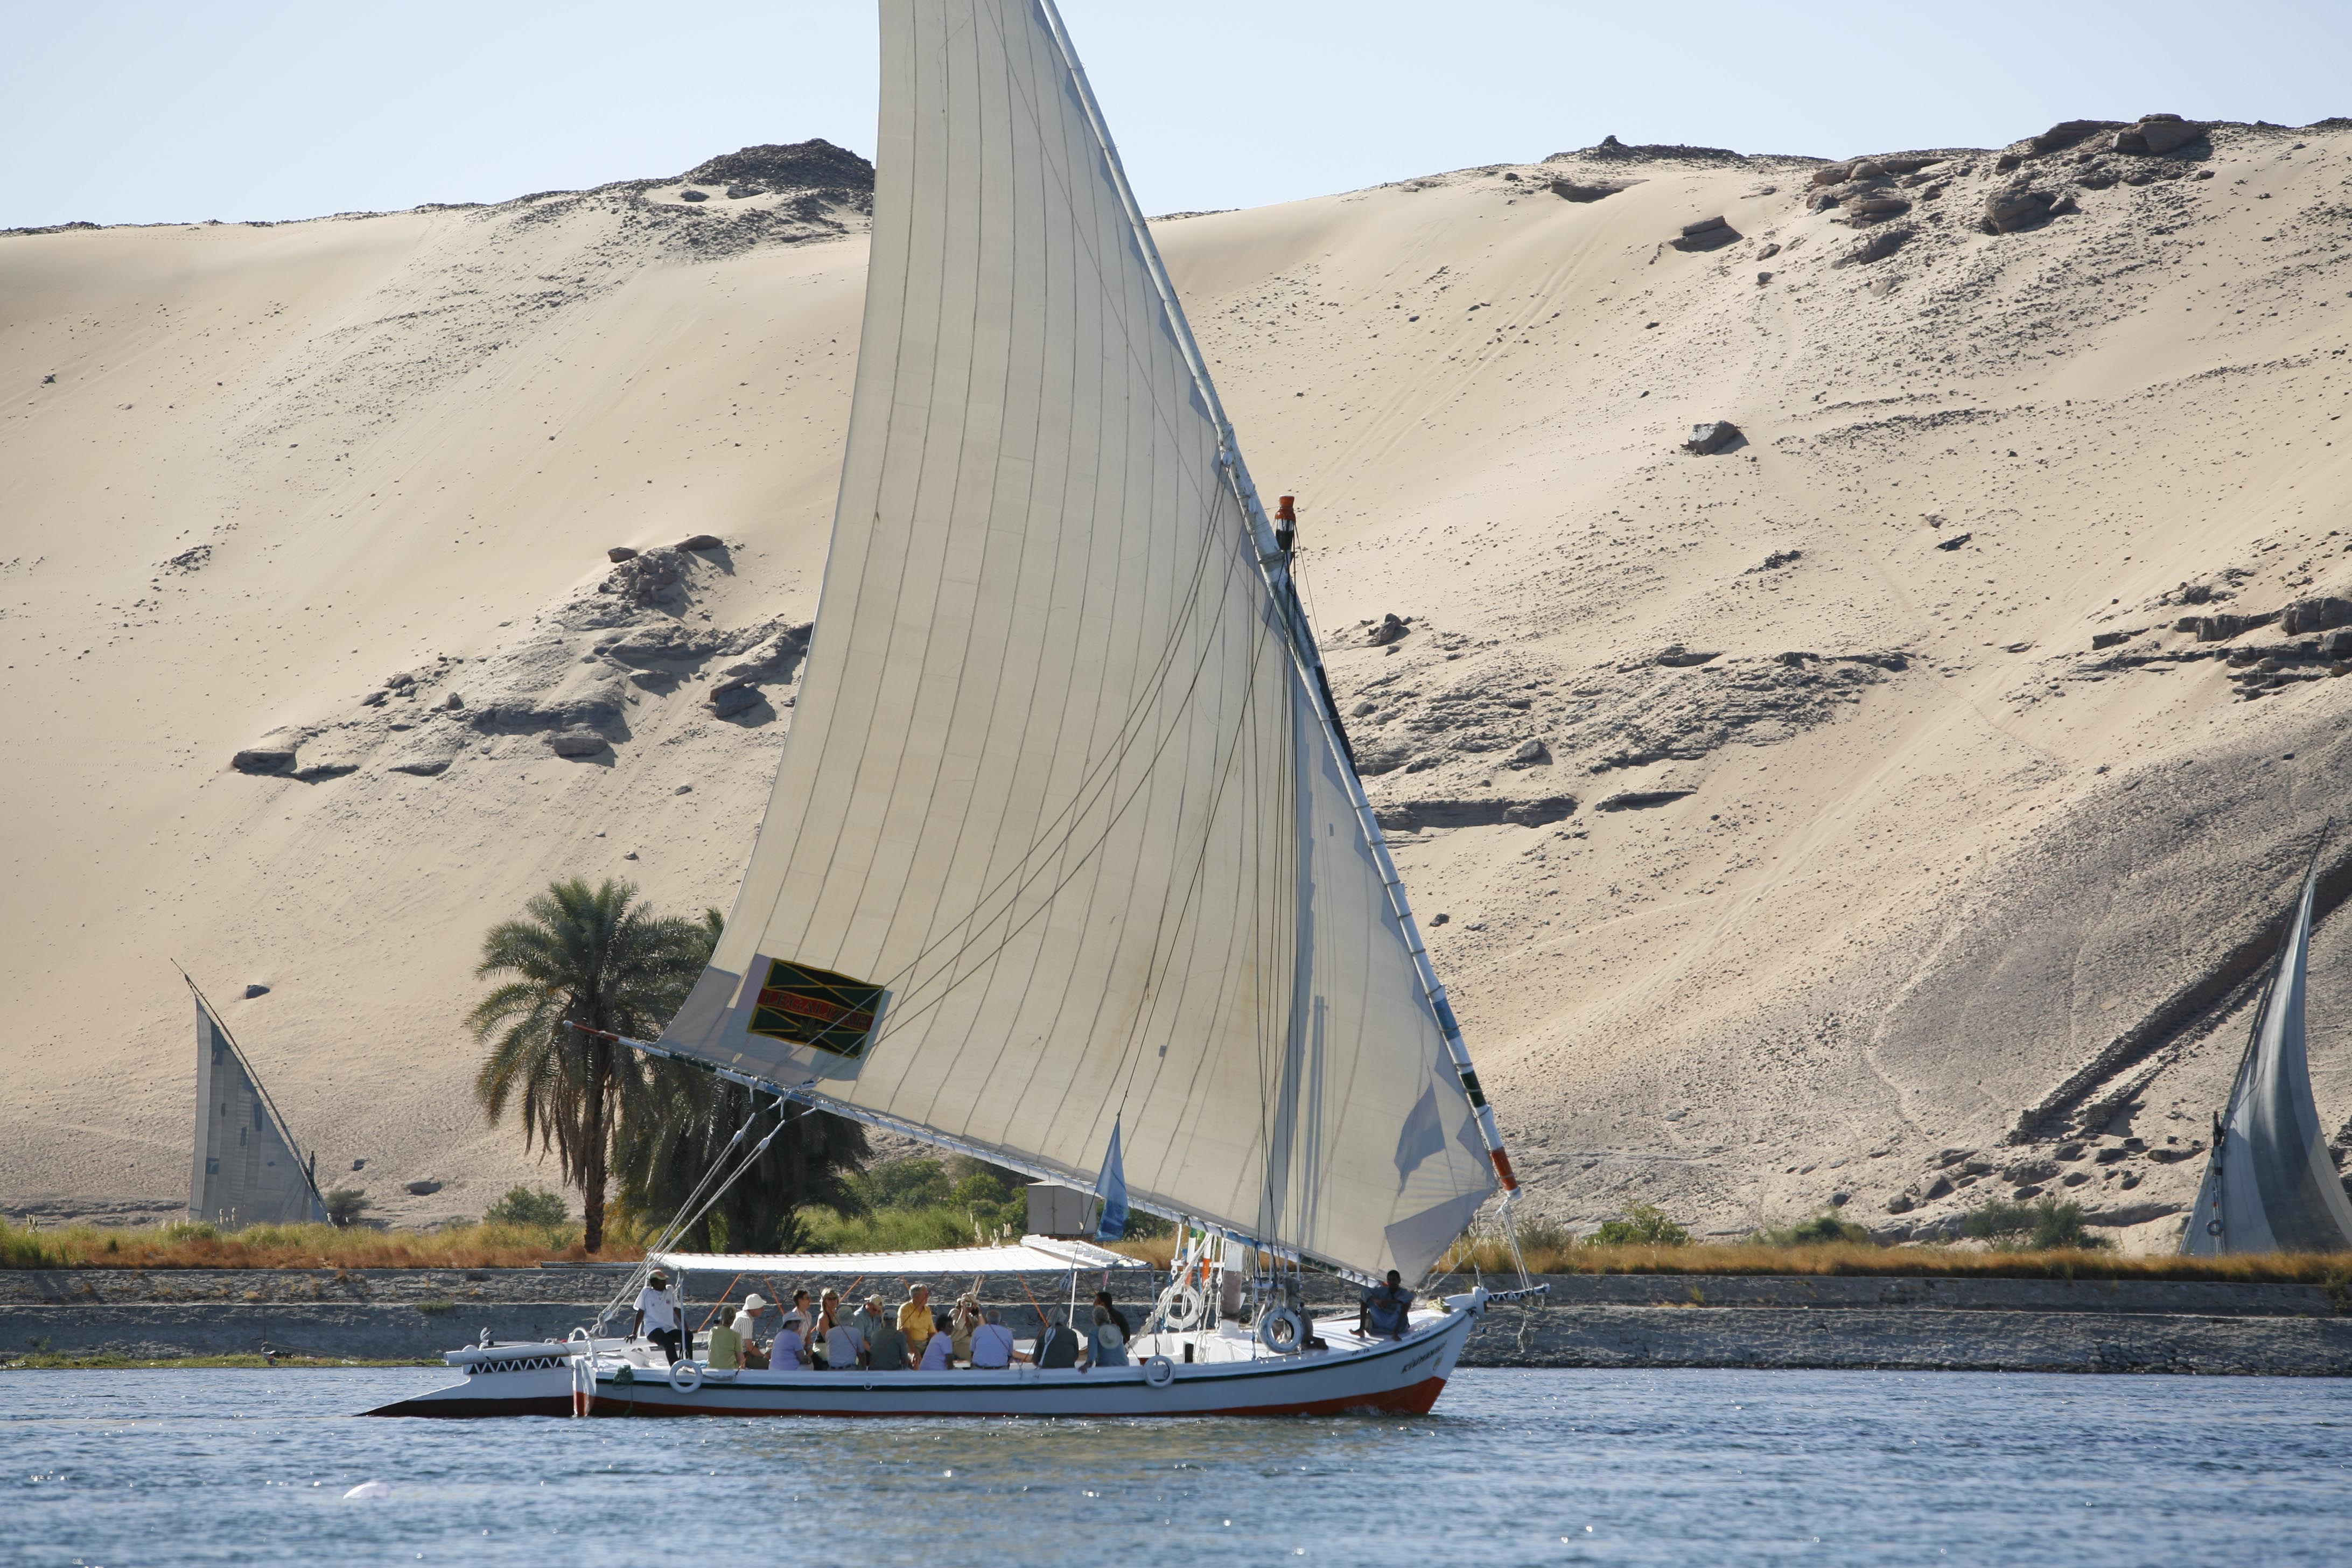 Luxor-Aswan Experience - Independent 4